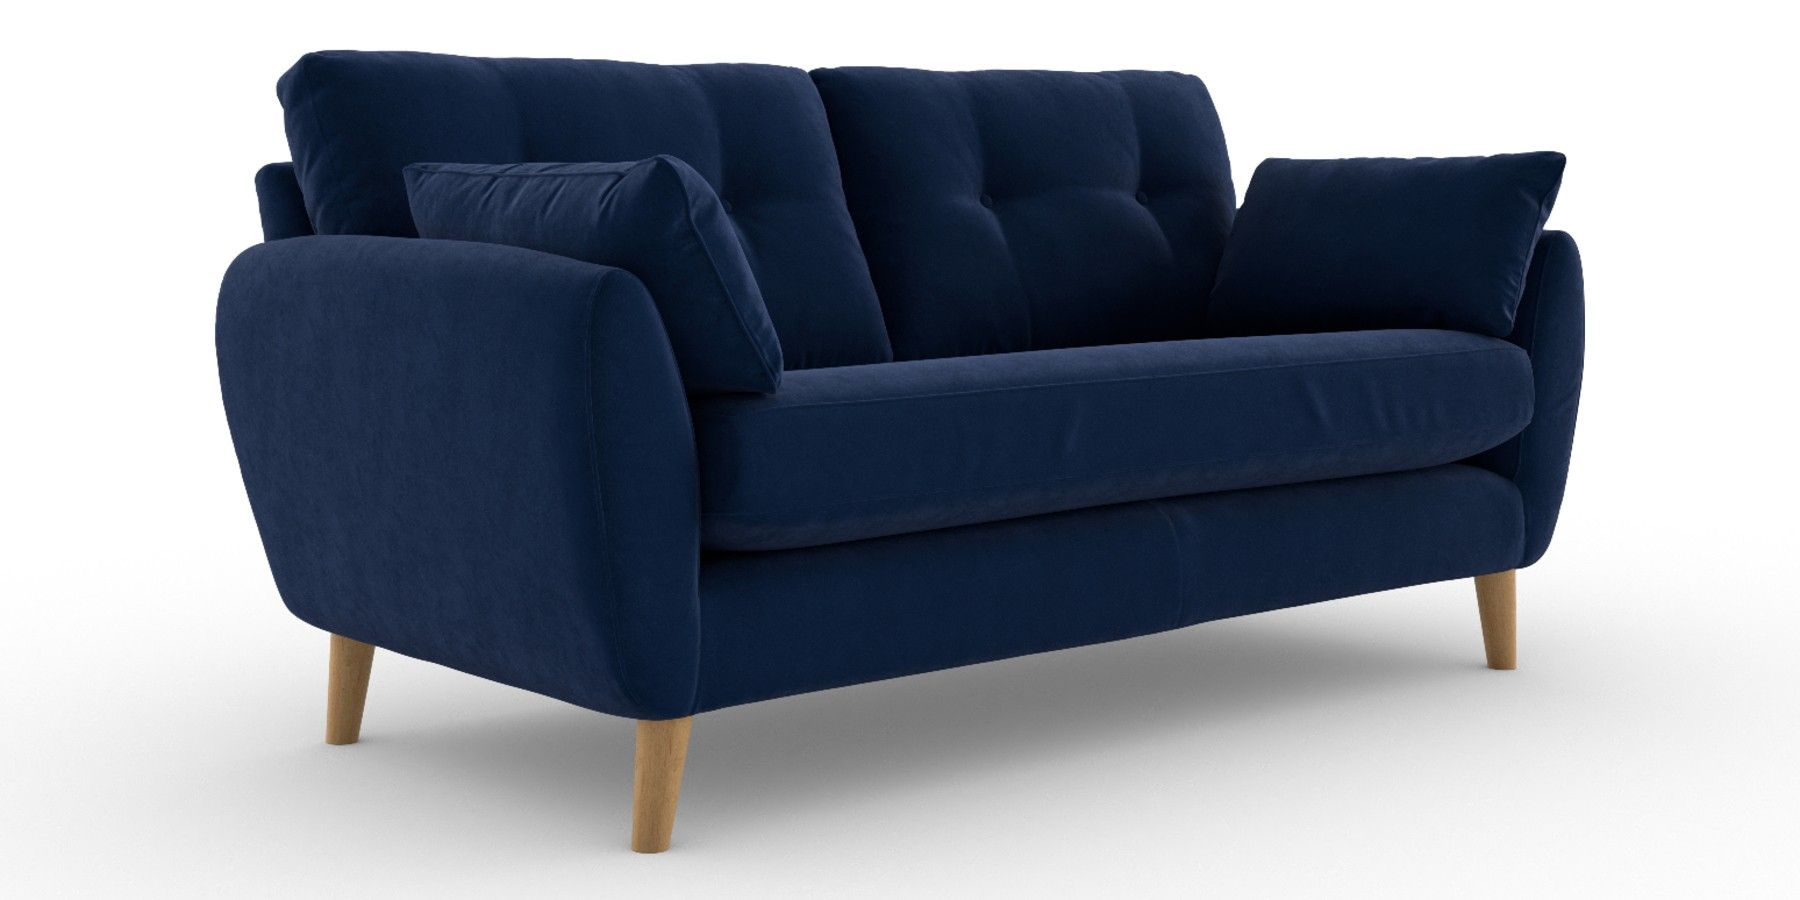 Buy Wilson Button Back Large Sofa 3 Seats Plush Velvet Navy Low Retro Tapered Light From The Next Uk Online Shop Large Sofa Sofa Next Sofa